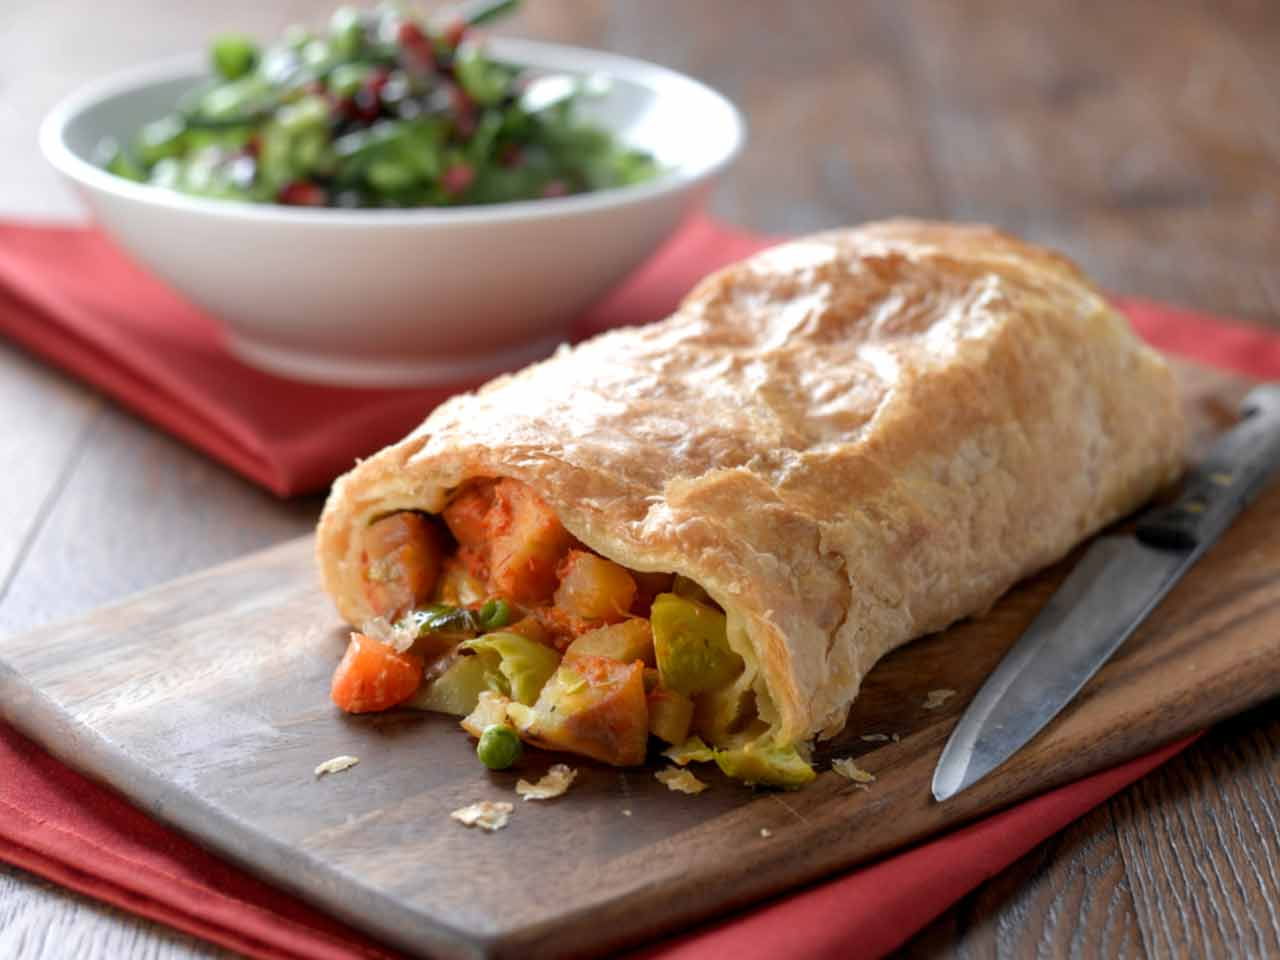 Leftover Christmas vegetable strudel